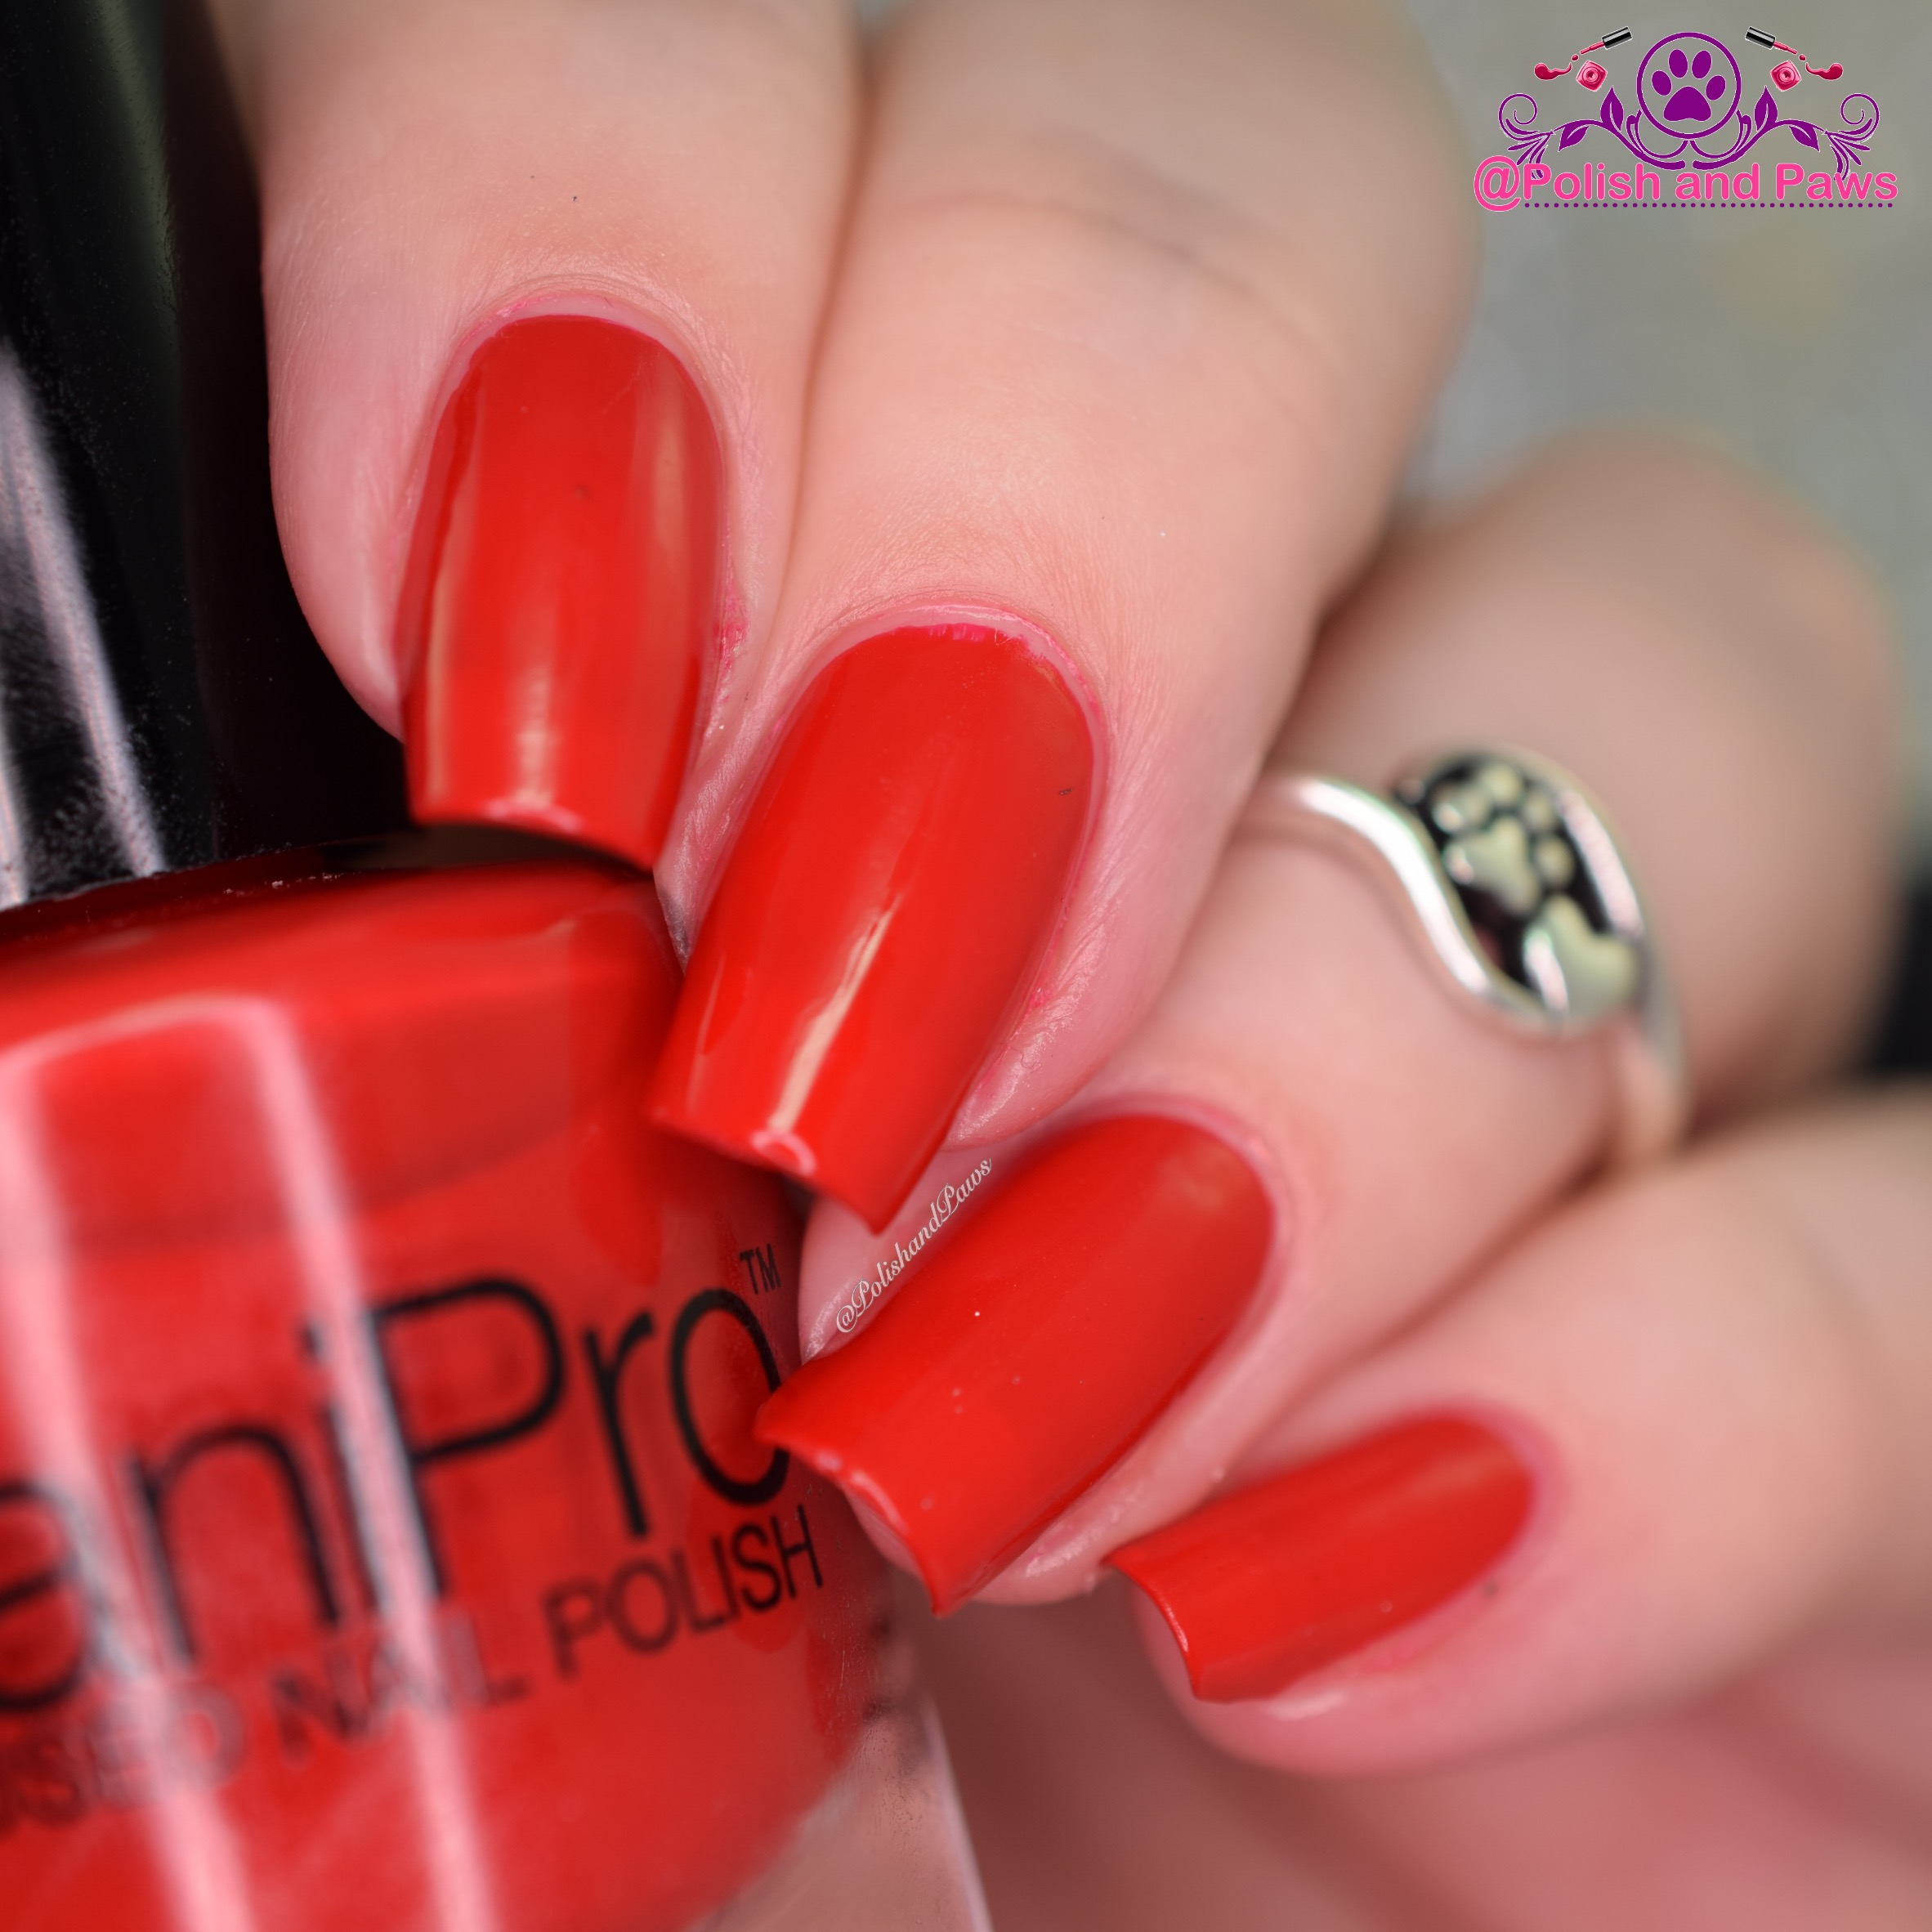 daniPro Red